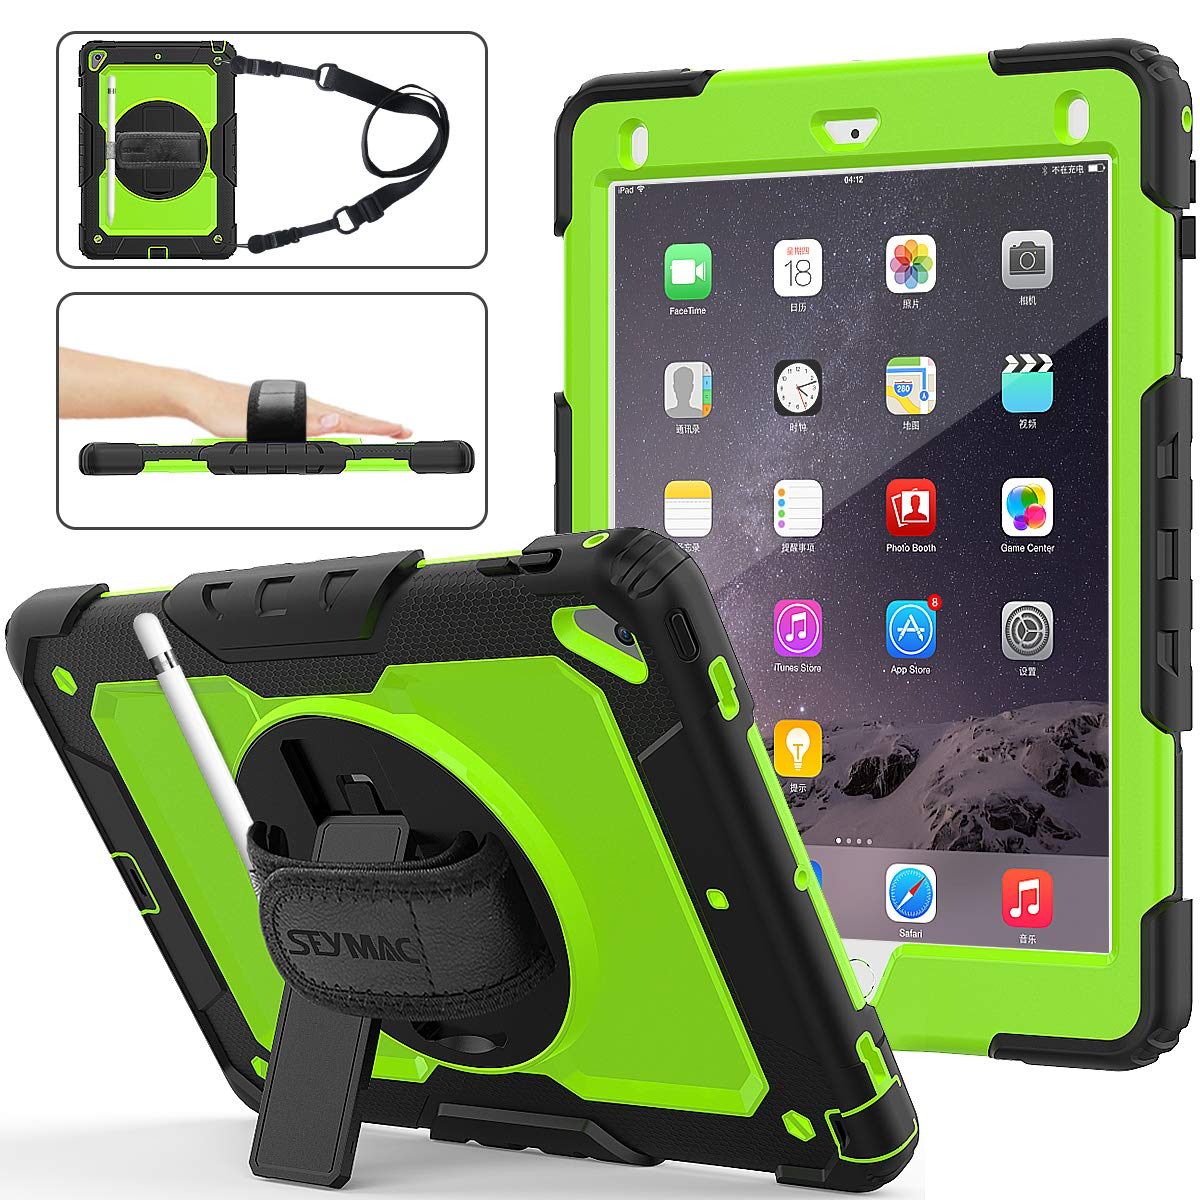 iPad 6th/5th Generation Case, SEYMAC Stock [Full-body] Drop Protect &Shockproof Hybrid Armor Protection with 360 Rotating Stand [Pencil Holder] Hand Strap for iPad 5th/6th/ Air 2/ Pro 9.7(Green+Black)